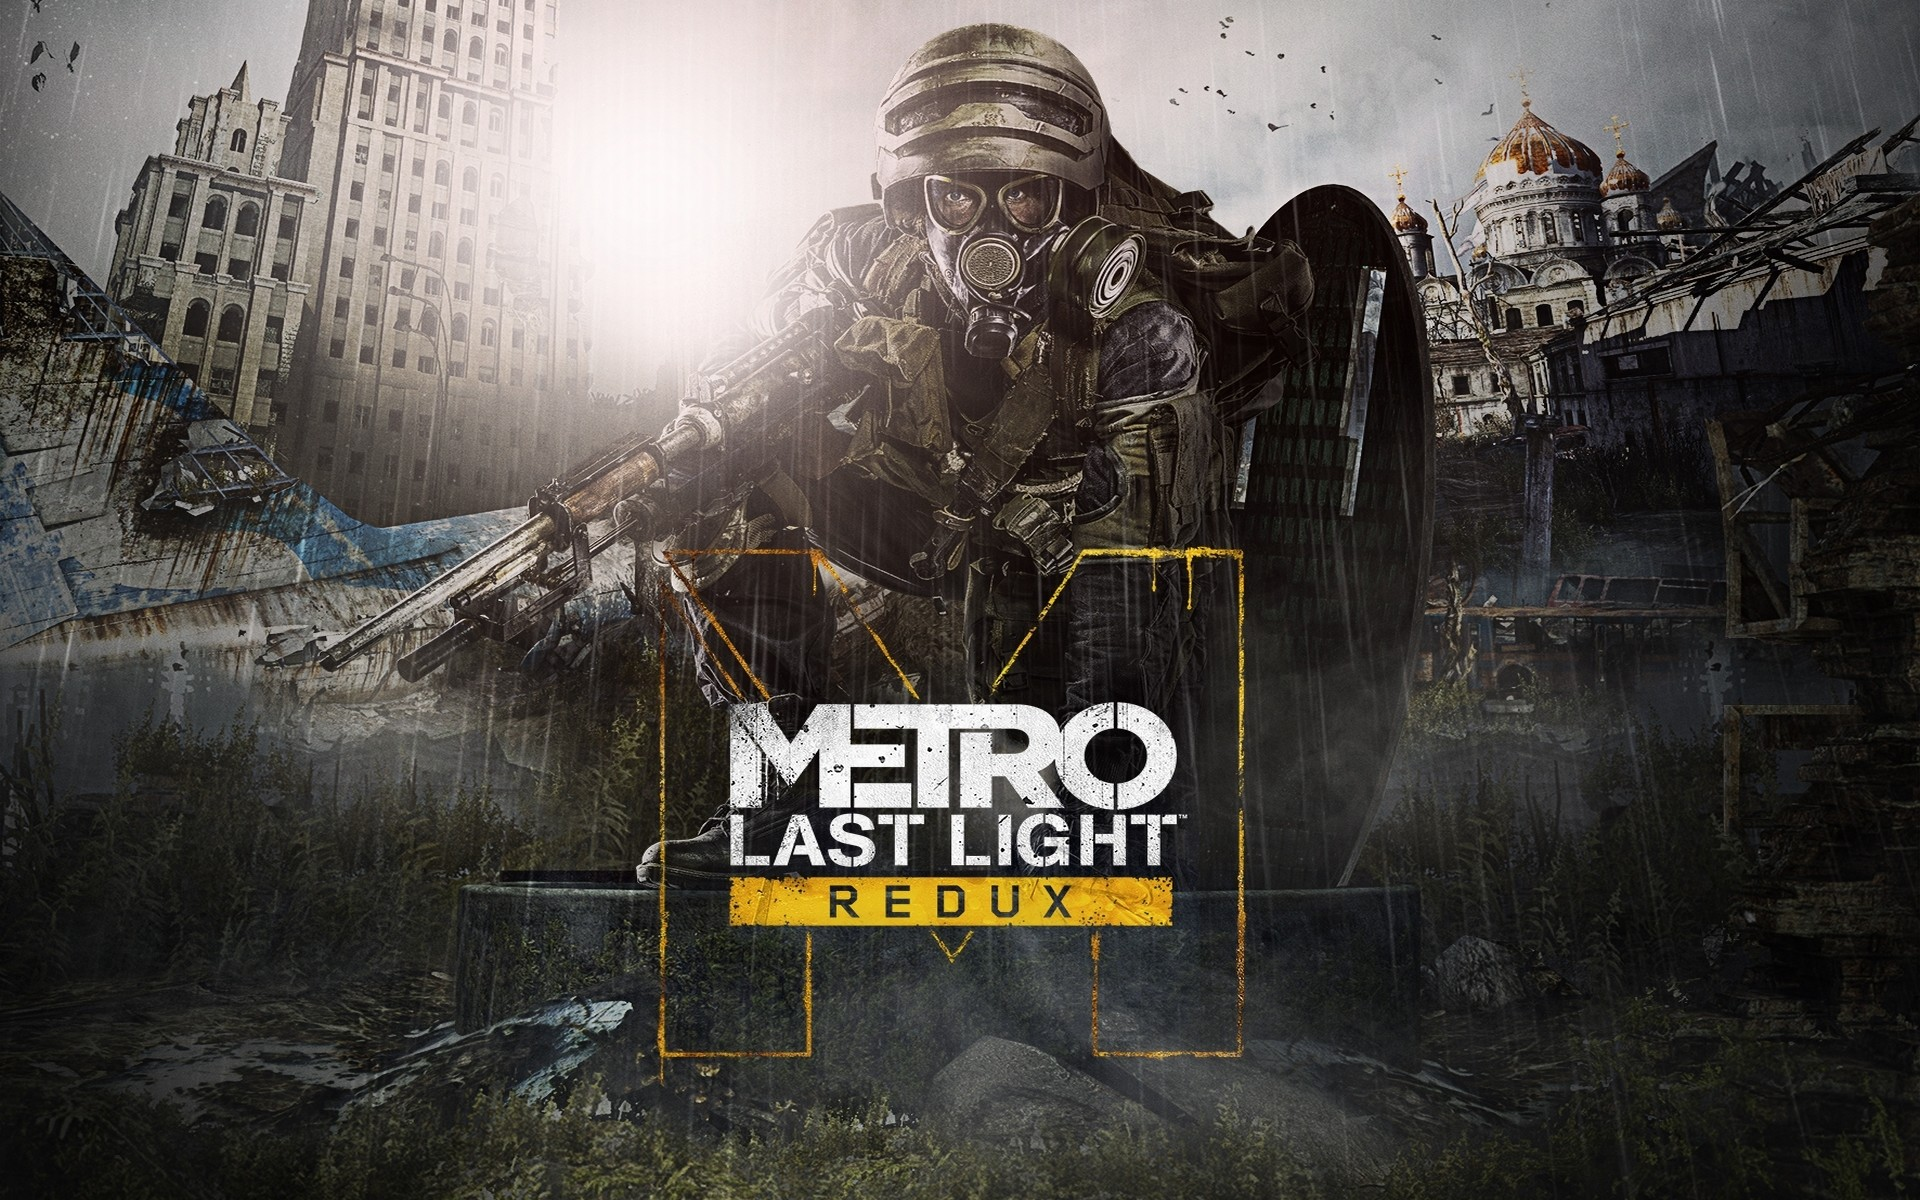 metro 2033 redux pc game, hd games, 4k wallpapers, images